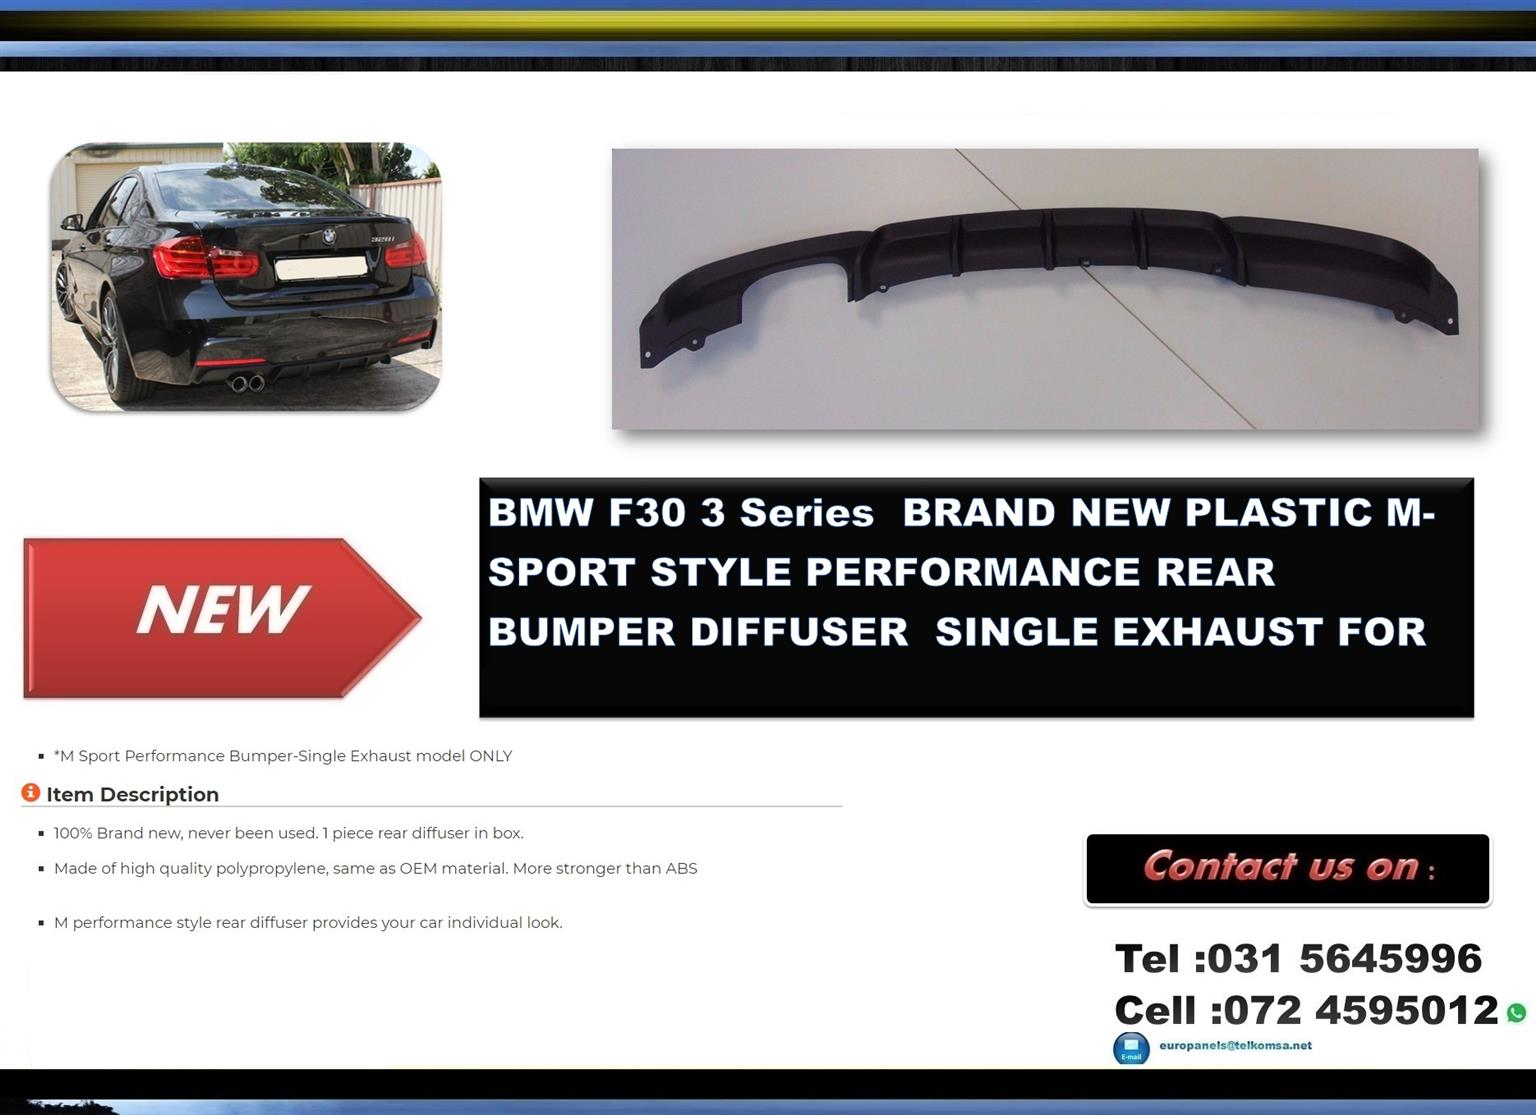 BMW F30 BRAND NEW PLASTIC M-SPORT STYLE PERFORMANCE REAR BUMPER DIFFUSER FOR SALE PRICE :R1395